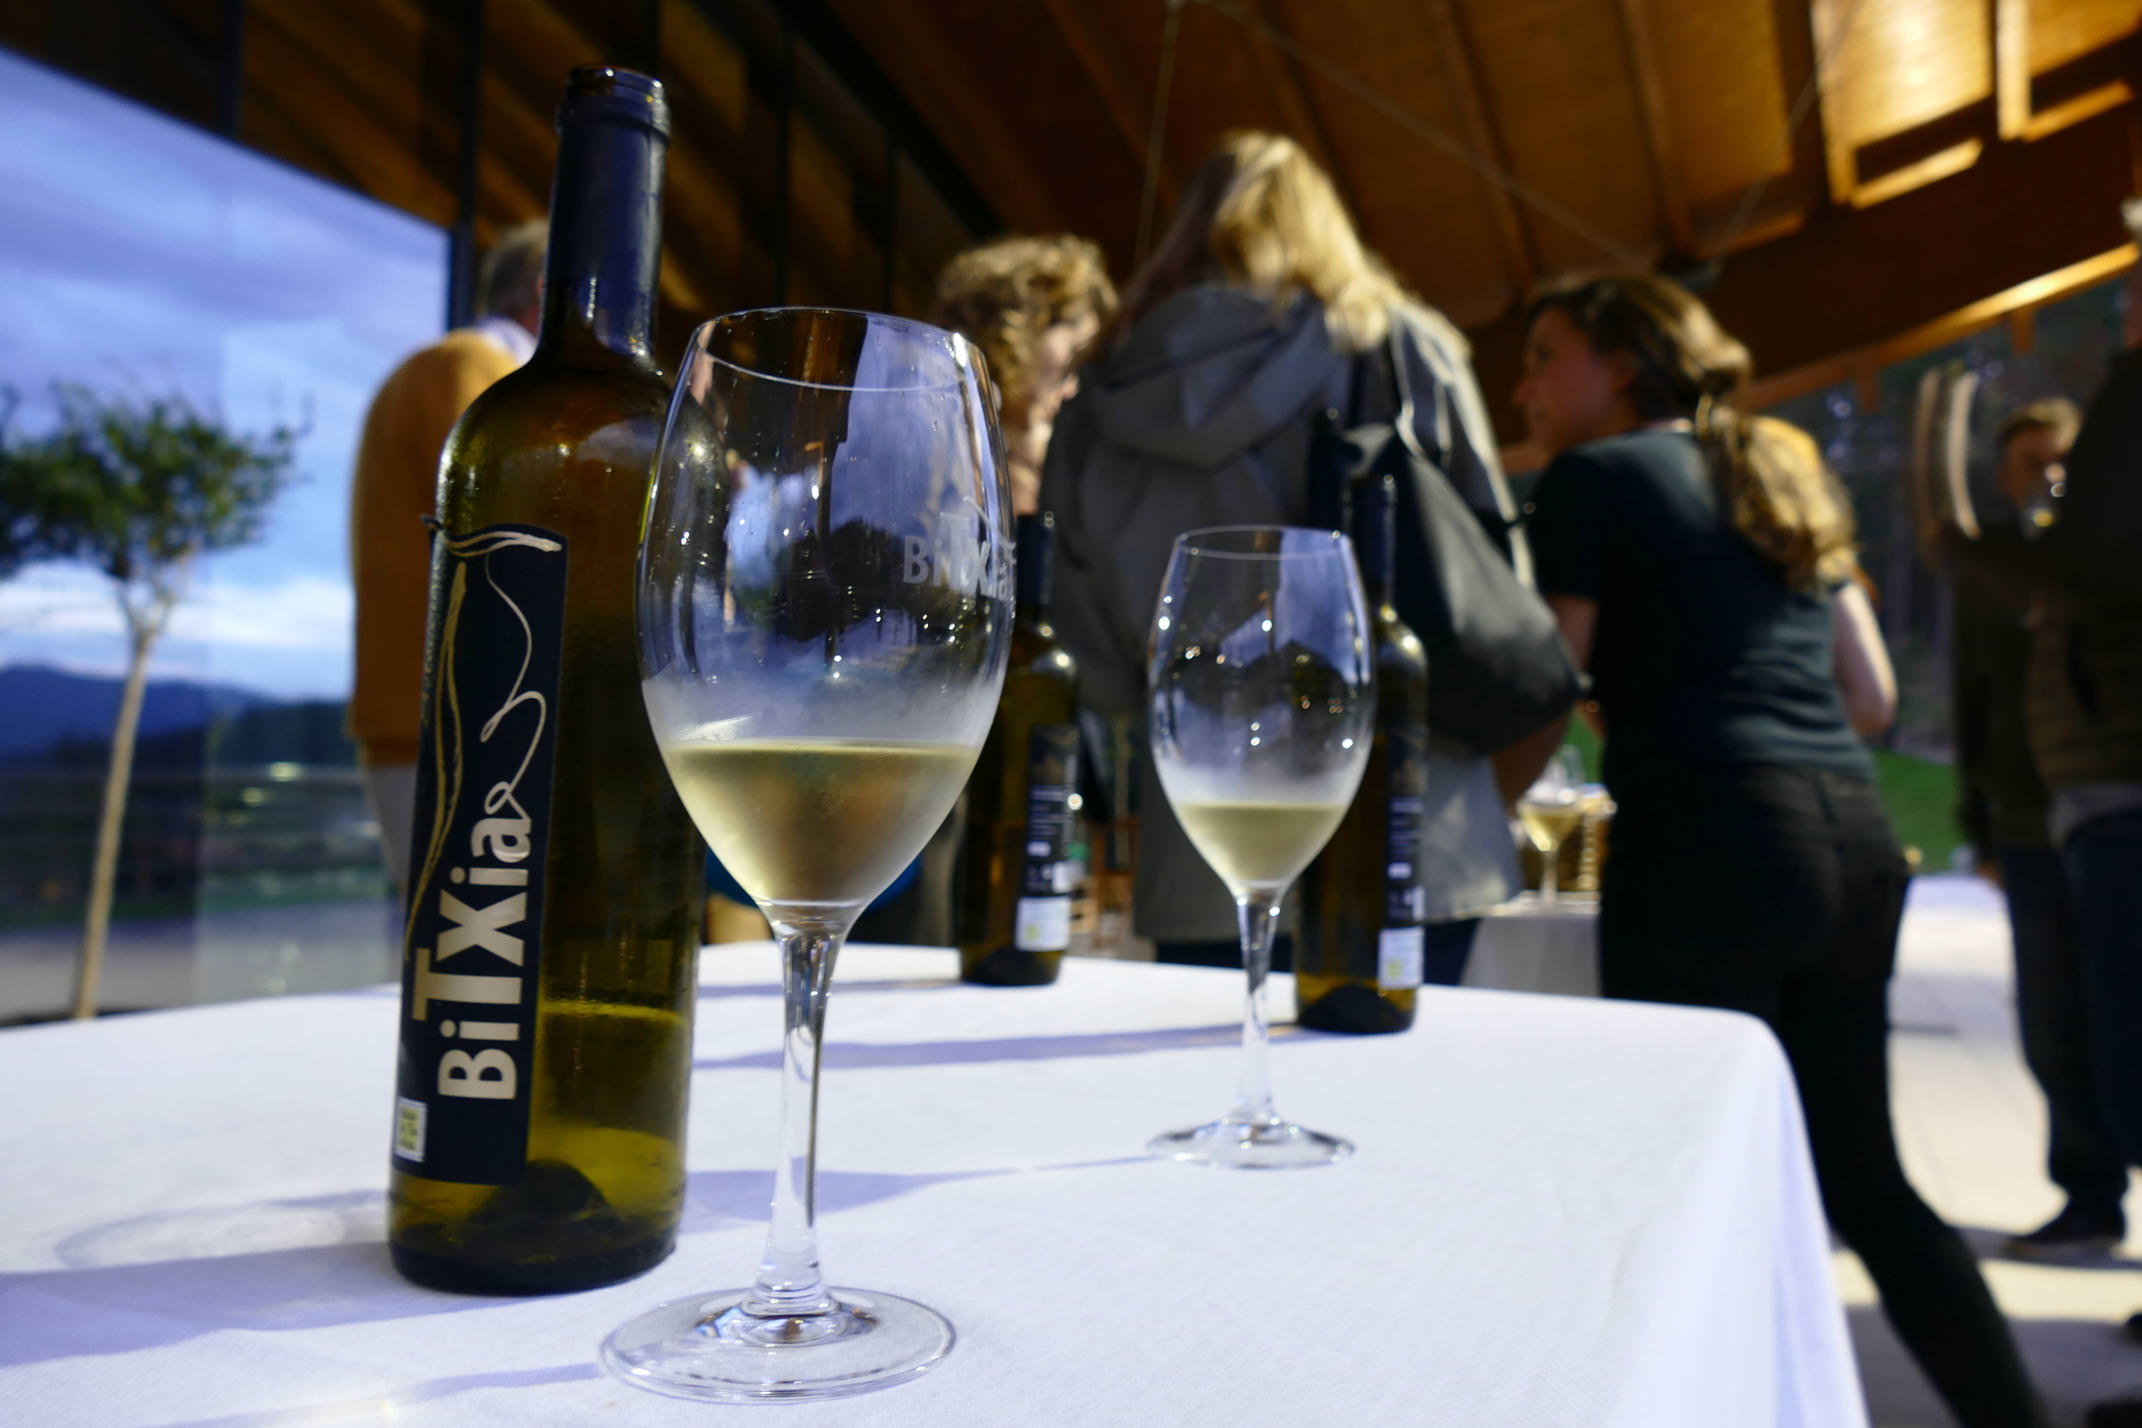 Spain basque country txacoli tasting bitxia bottle close up